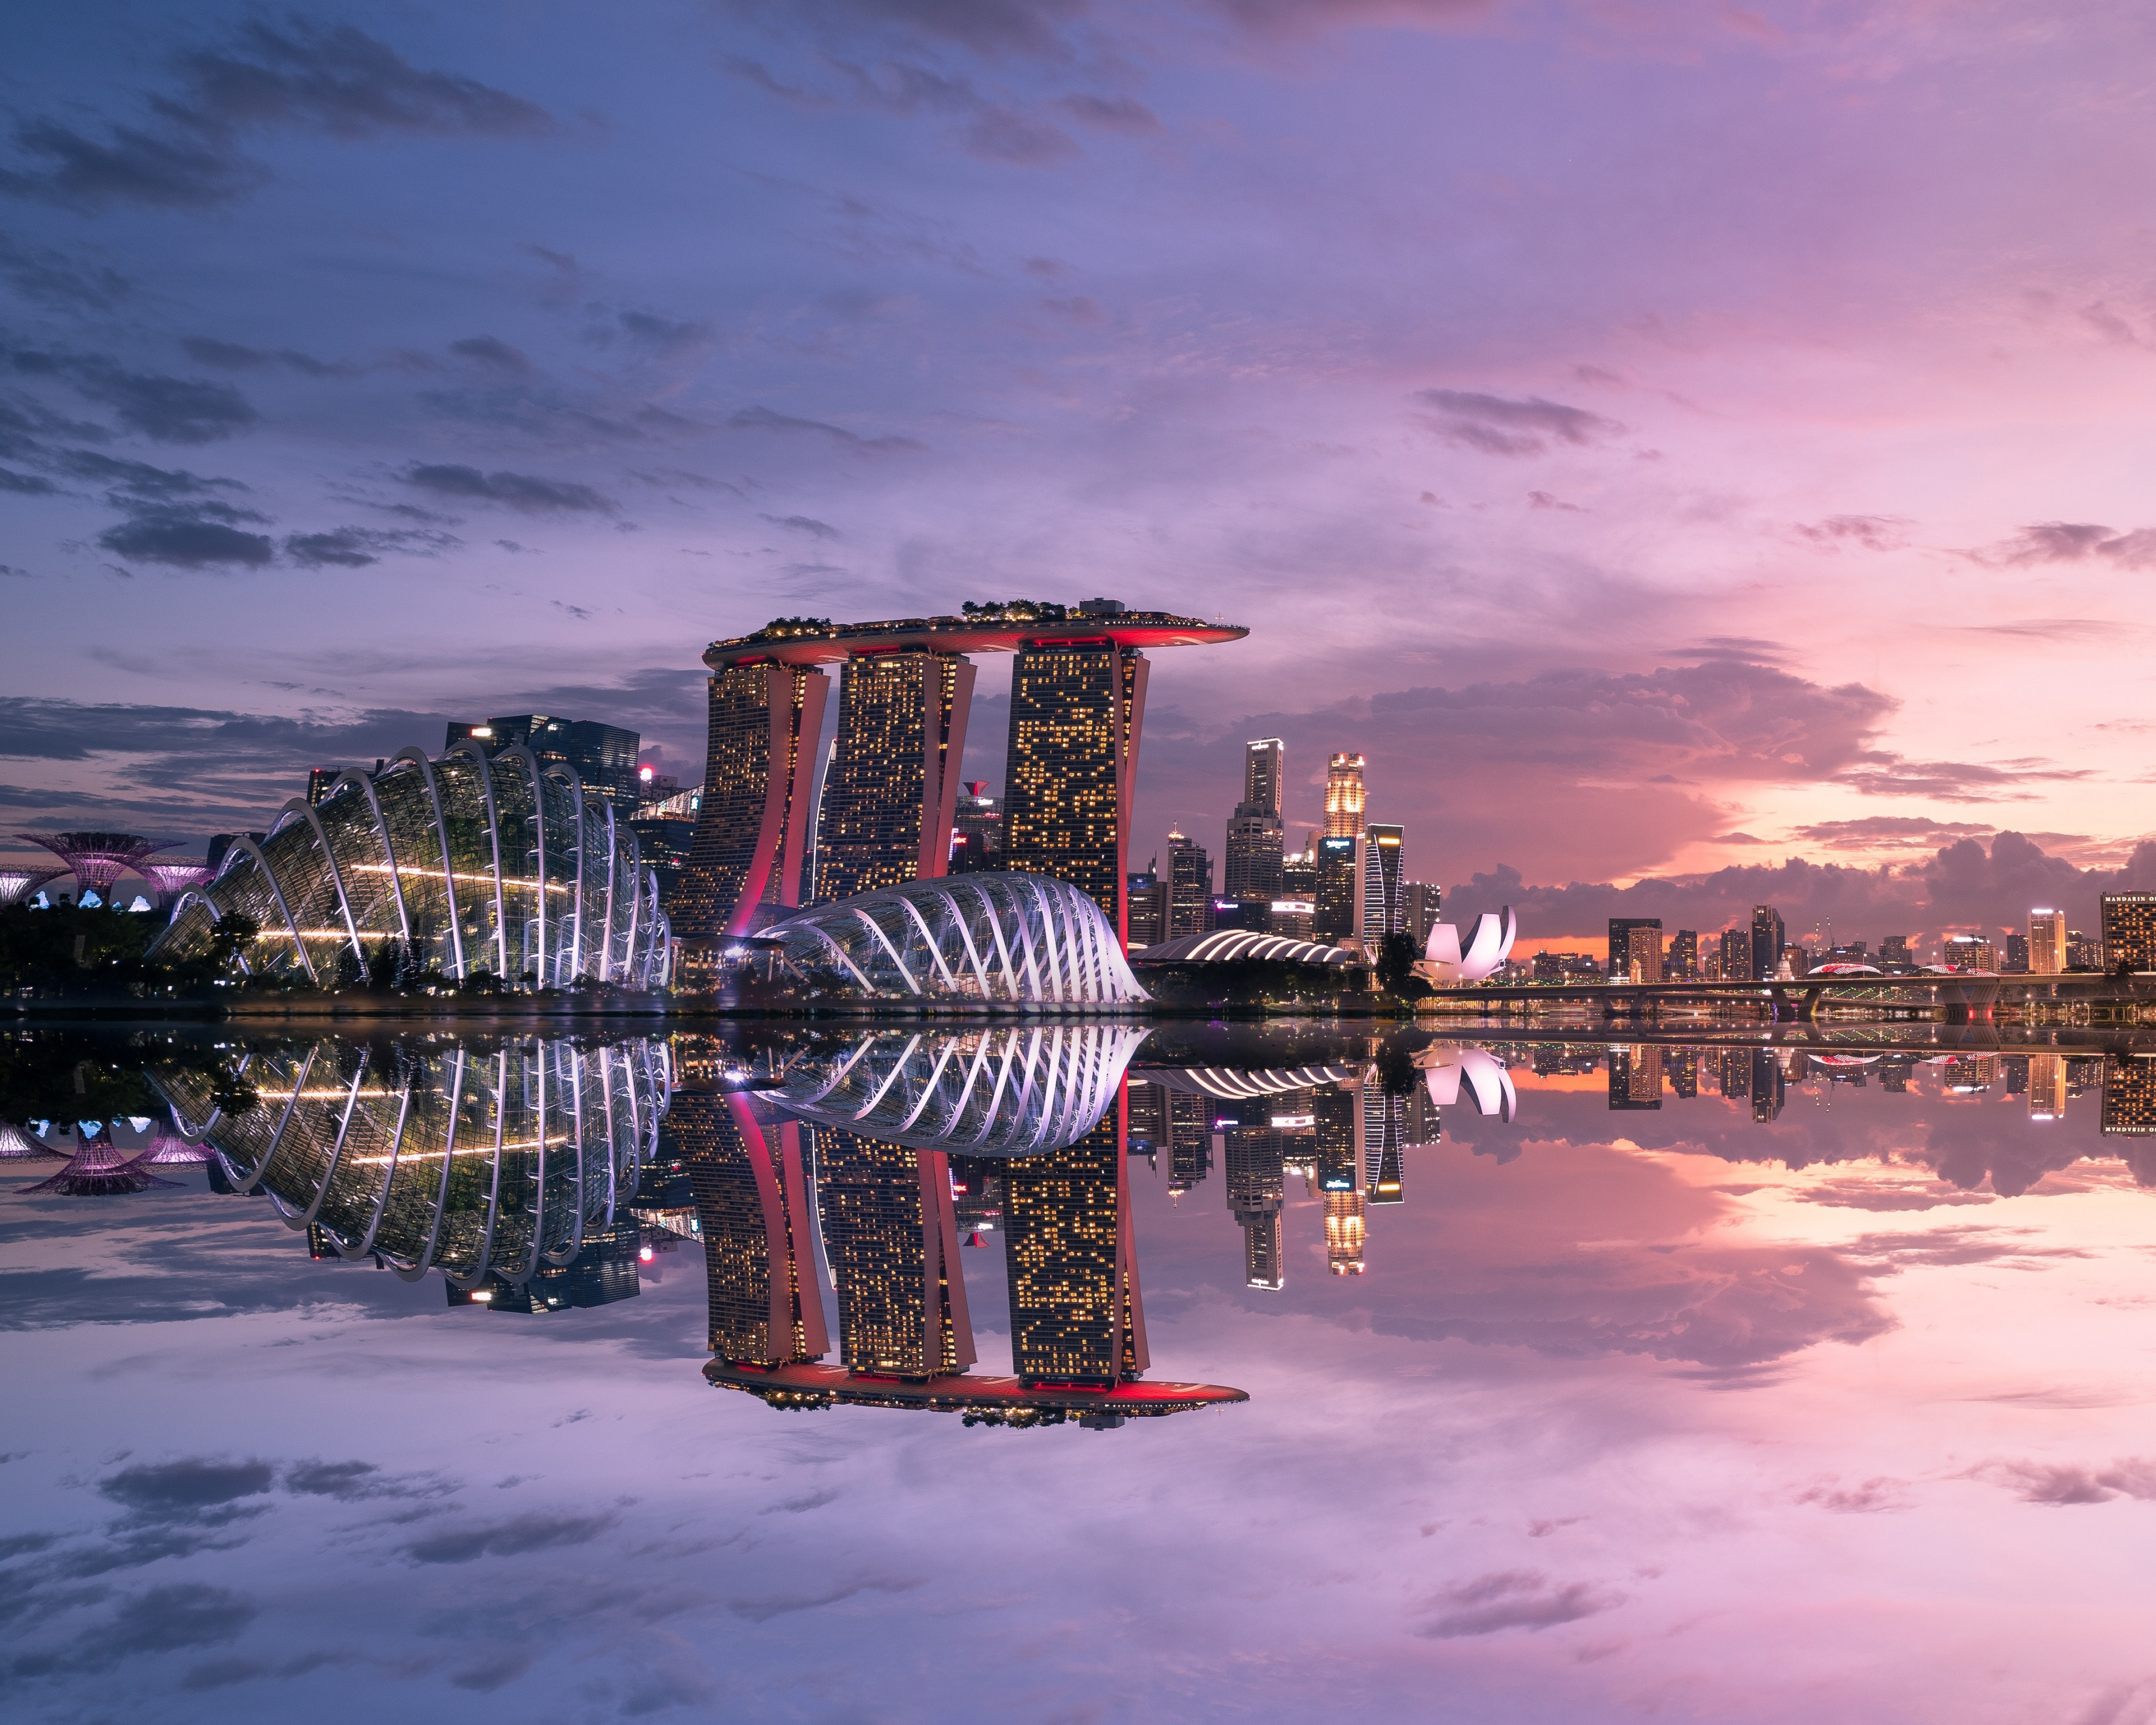 Wallpaper Singapore reflected in the water at sunset